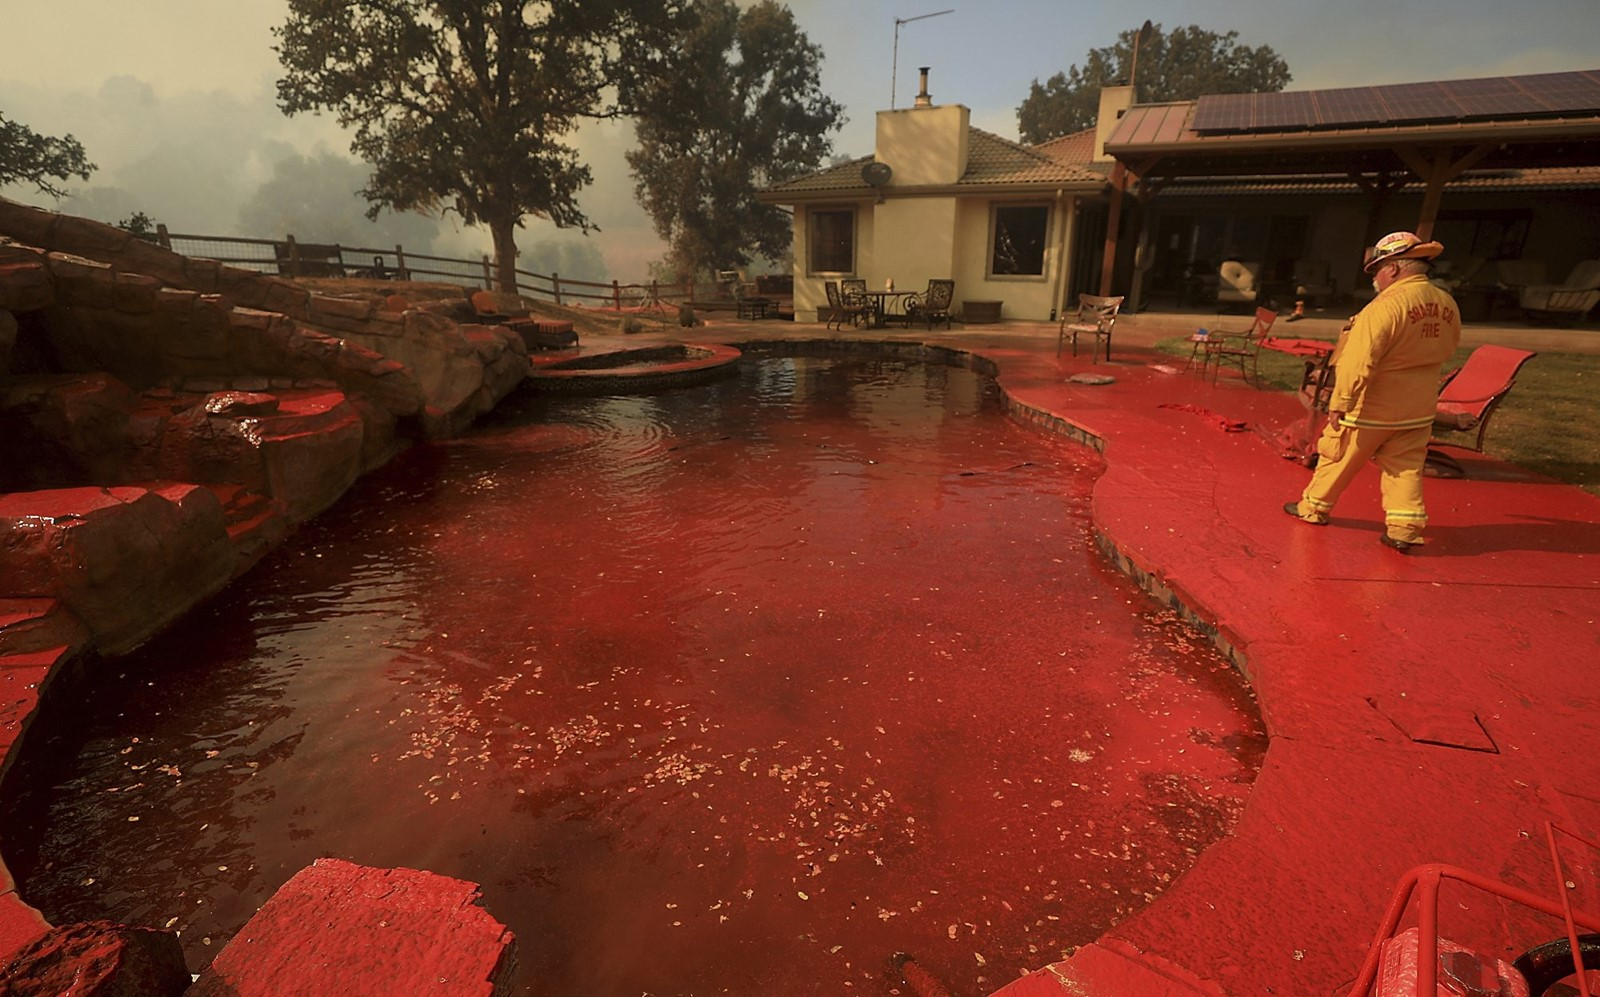 Fire retardant coats a pool in Lake County on Thursday. Winds threatened to push the Ranch fire south, spurring evacuations in Lake and Colusa counties. — Photograph: Kent Porter/Press Democrat.